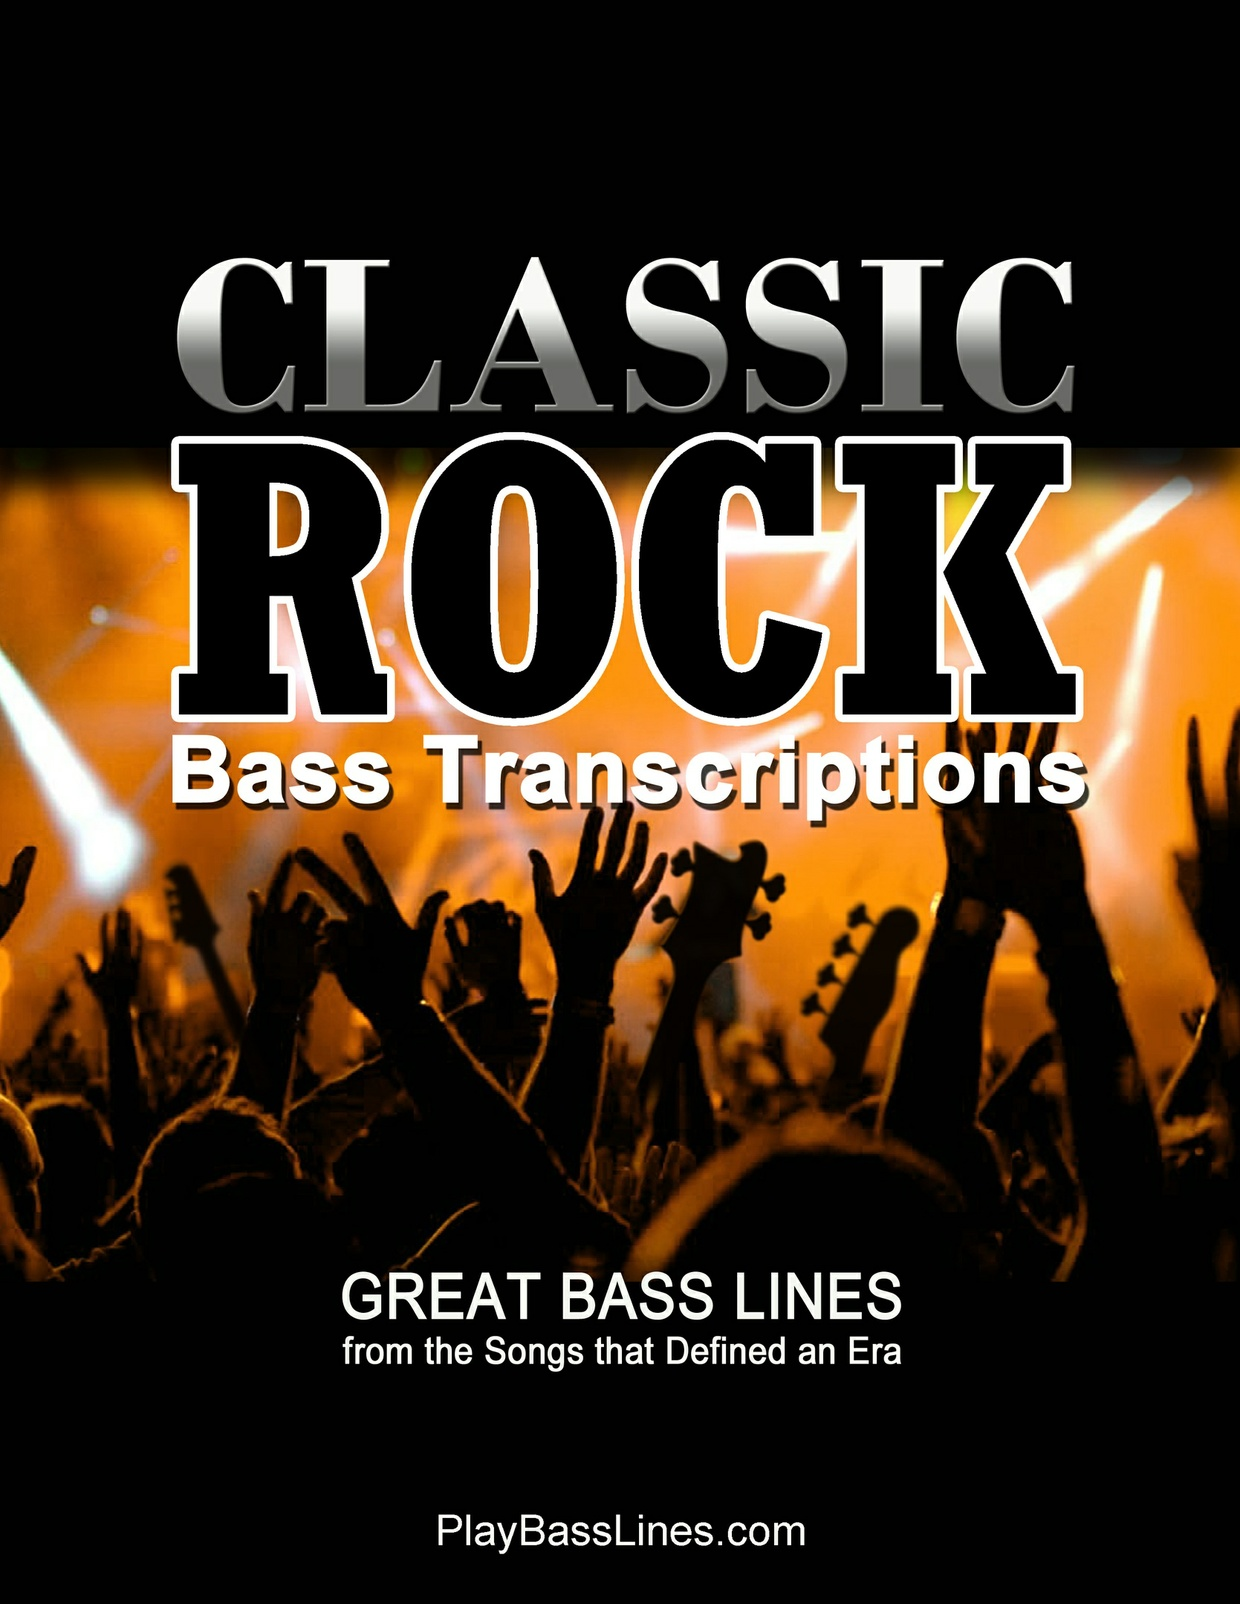 Classic Rock Bass Transcriptions, Vol 1